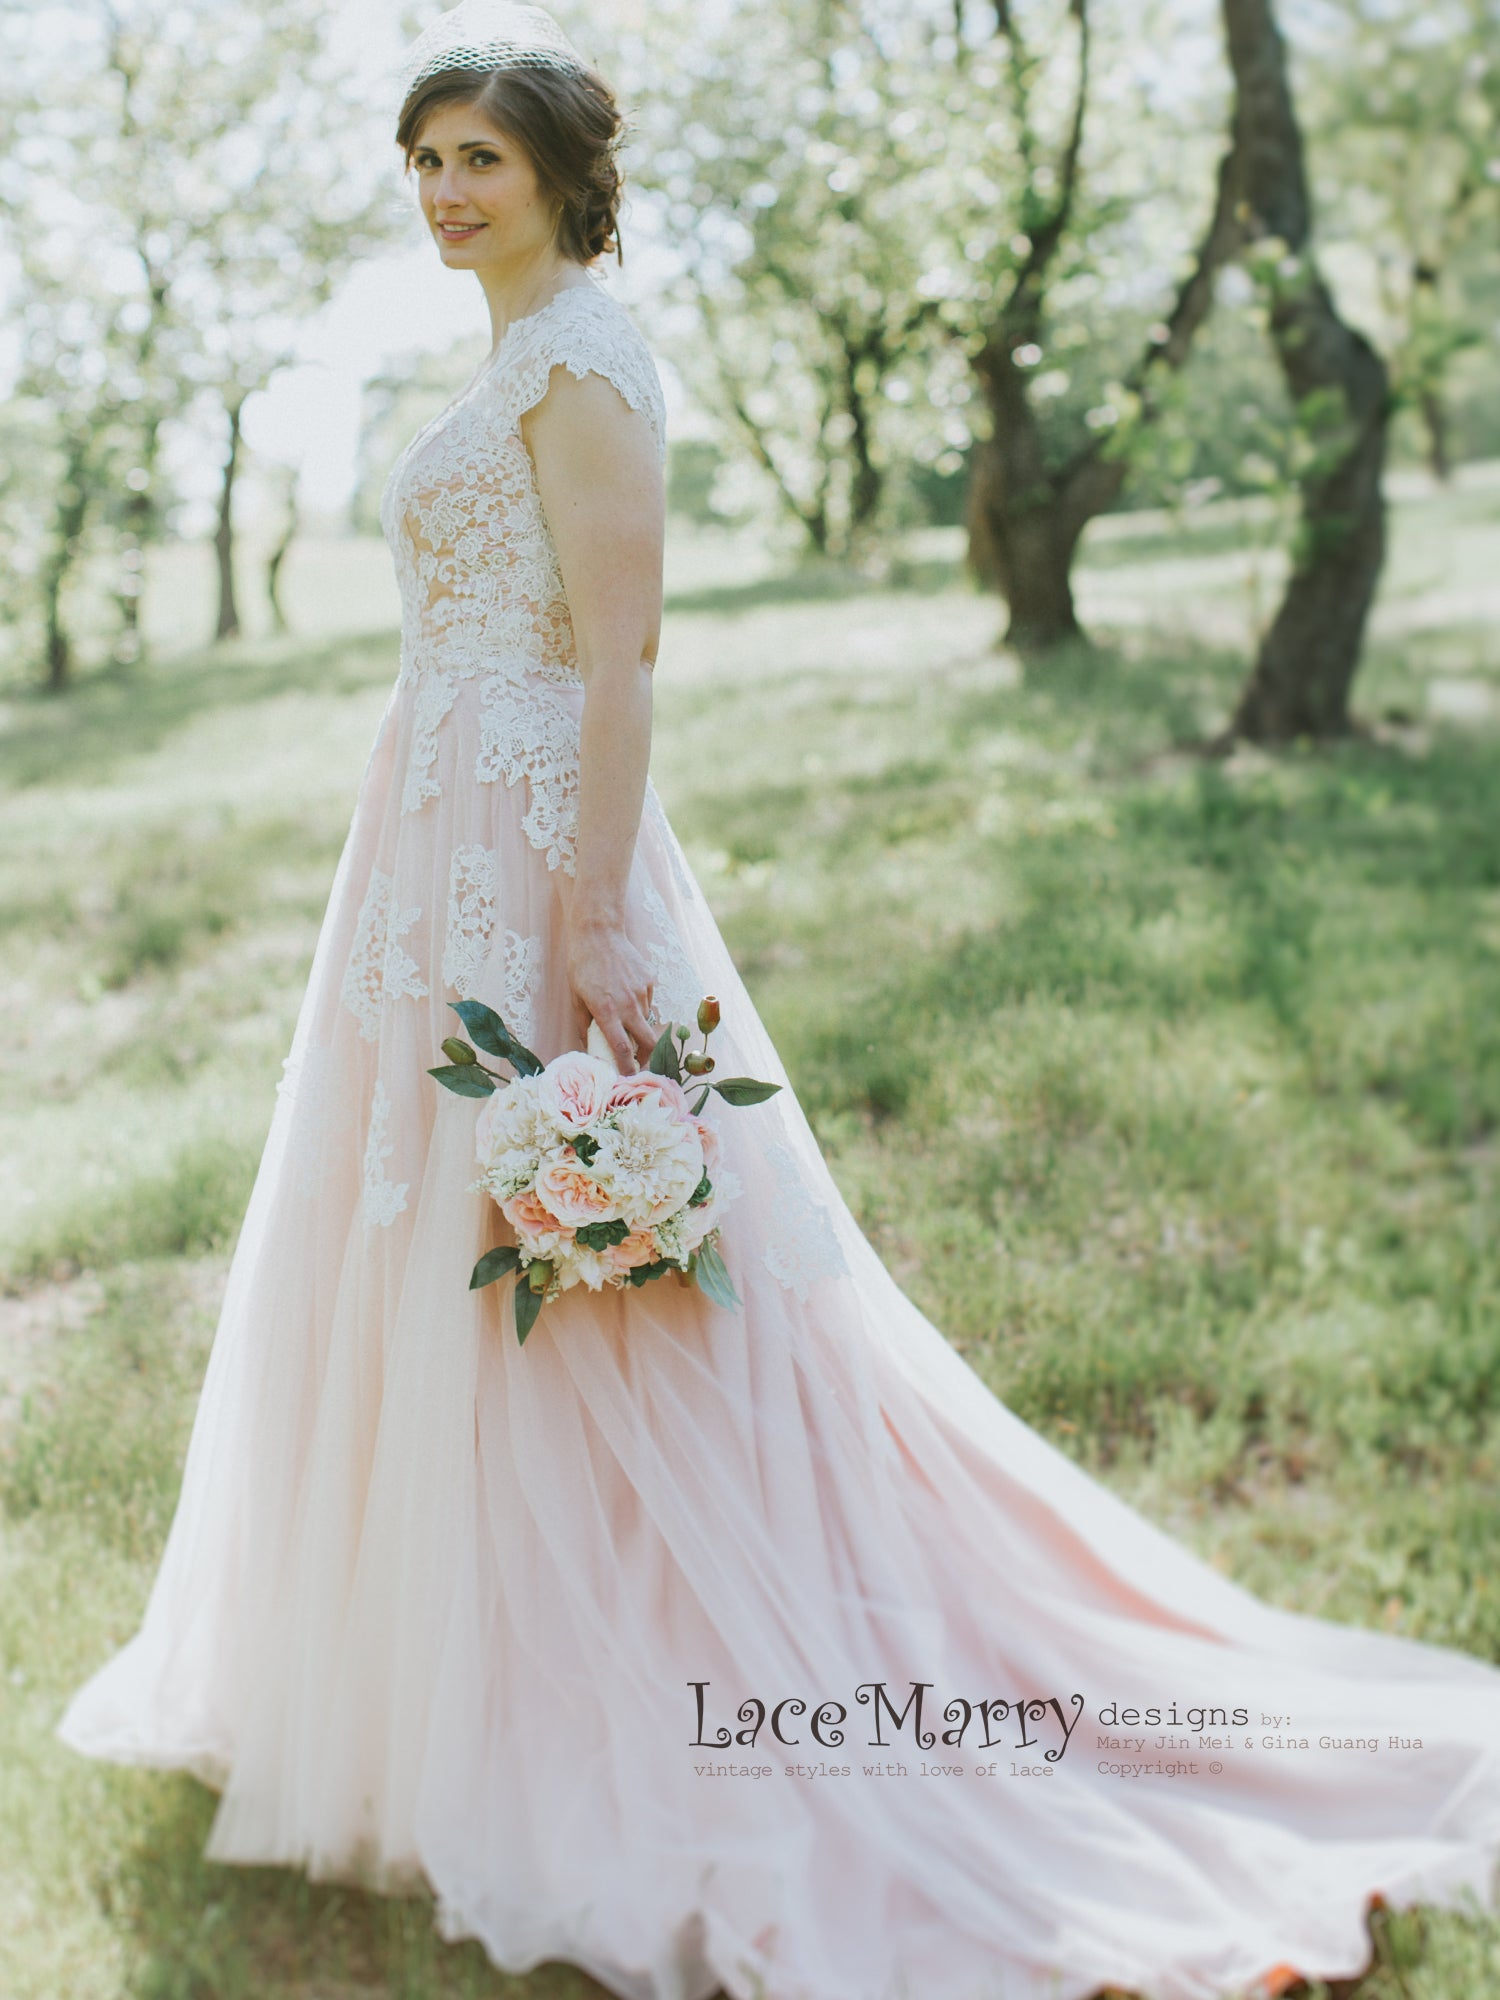 A Line Wedding Dress in Blush Color